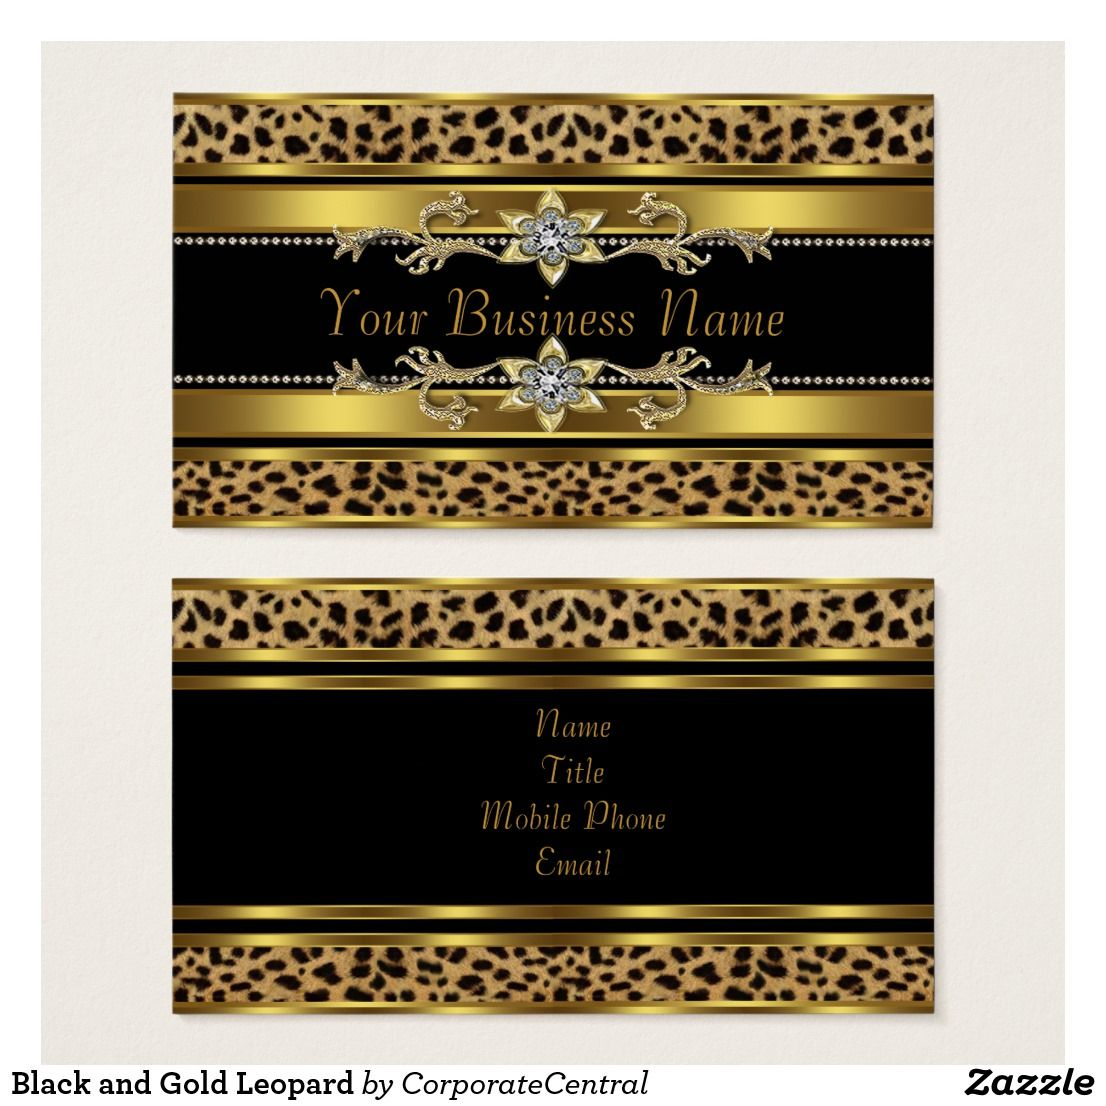 Black and Gold Leopard Business Card | Beauty Business | Pinterest ...